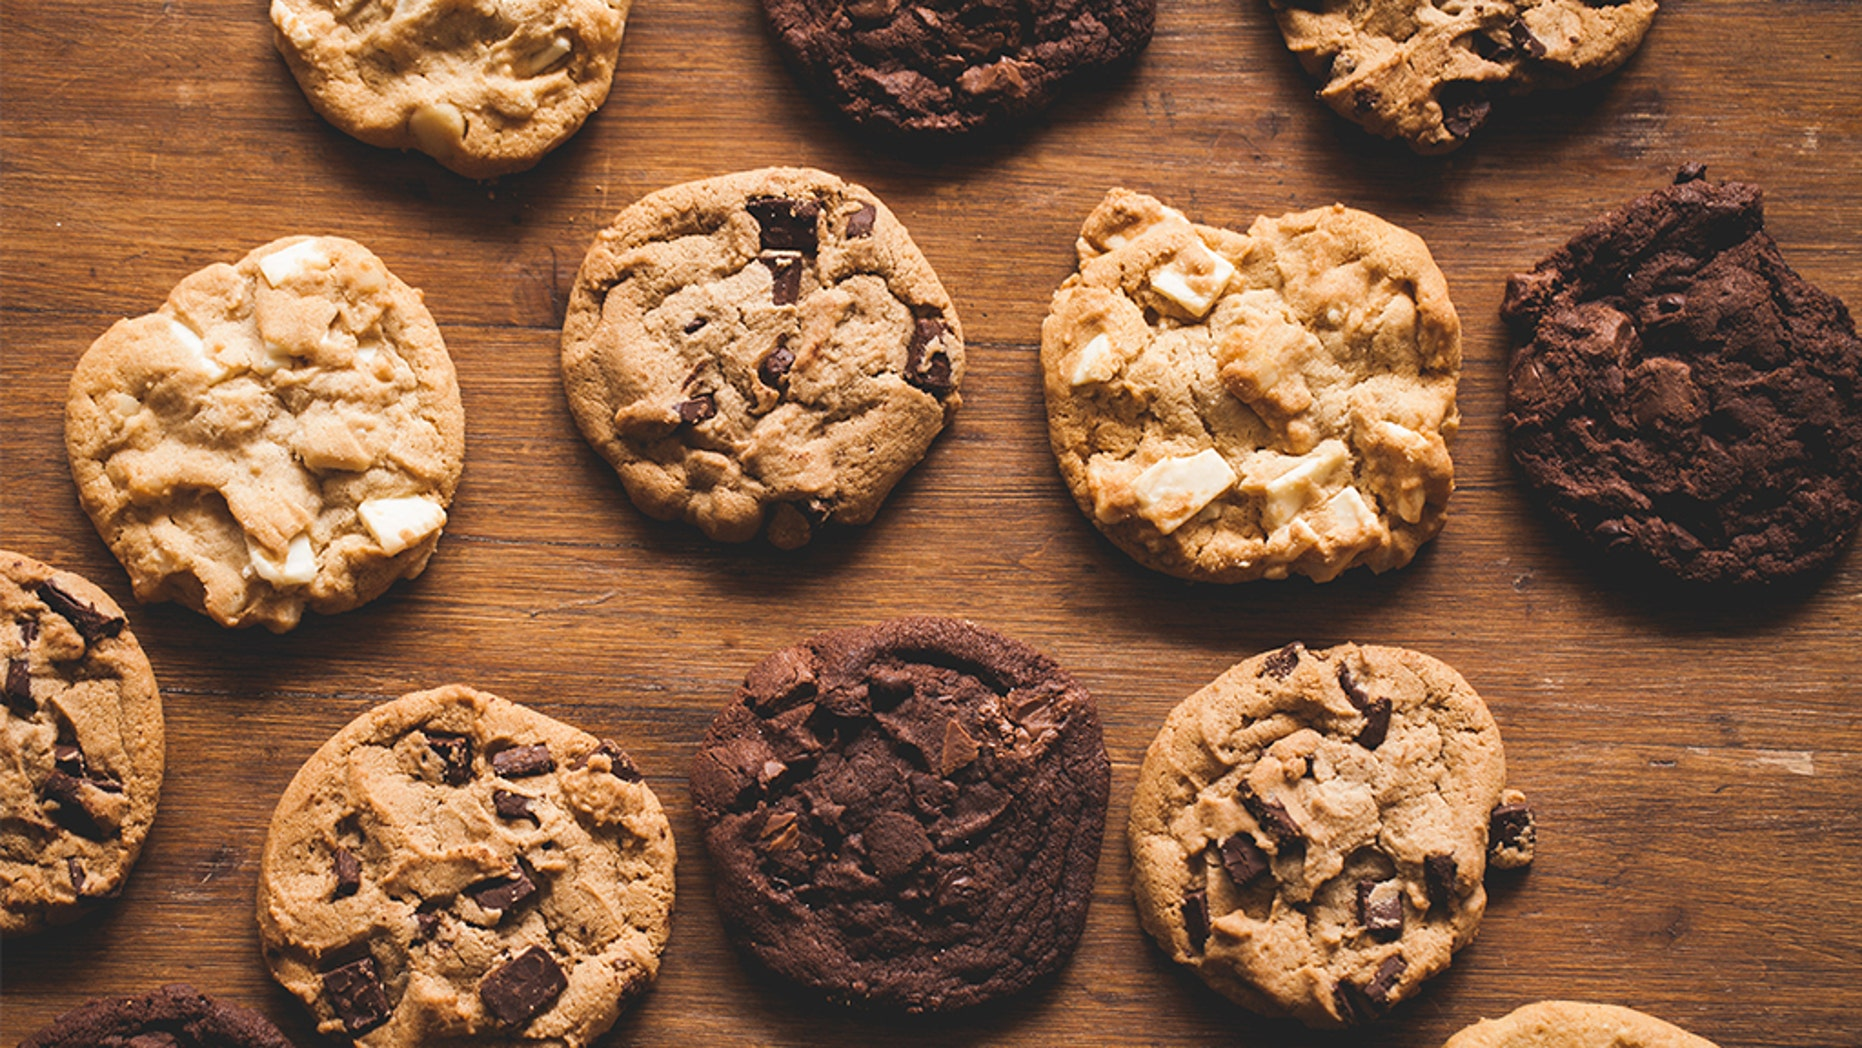 Say no to raw cookie dough — CDC issues warning